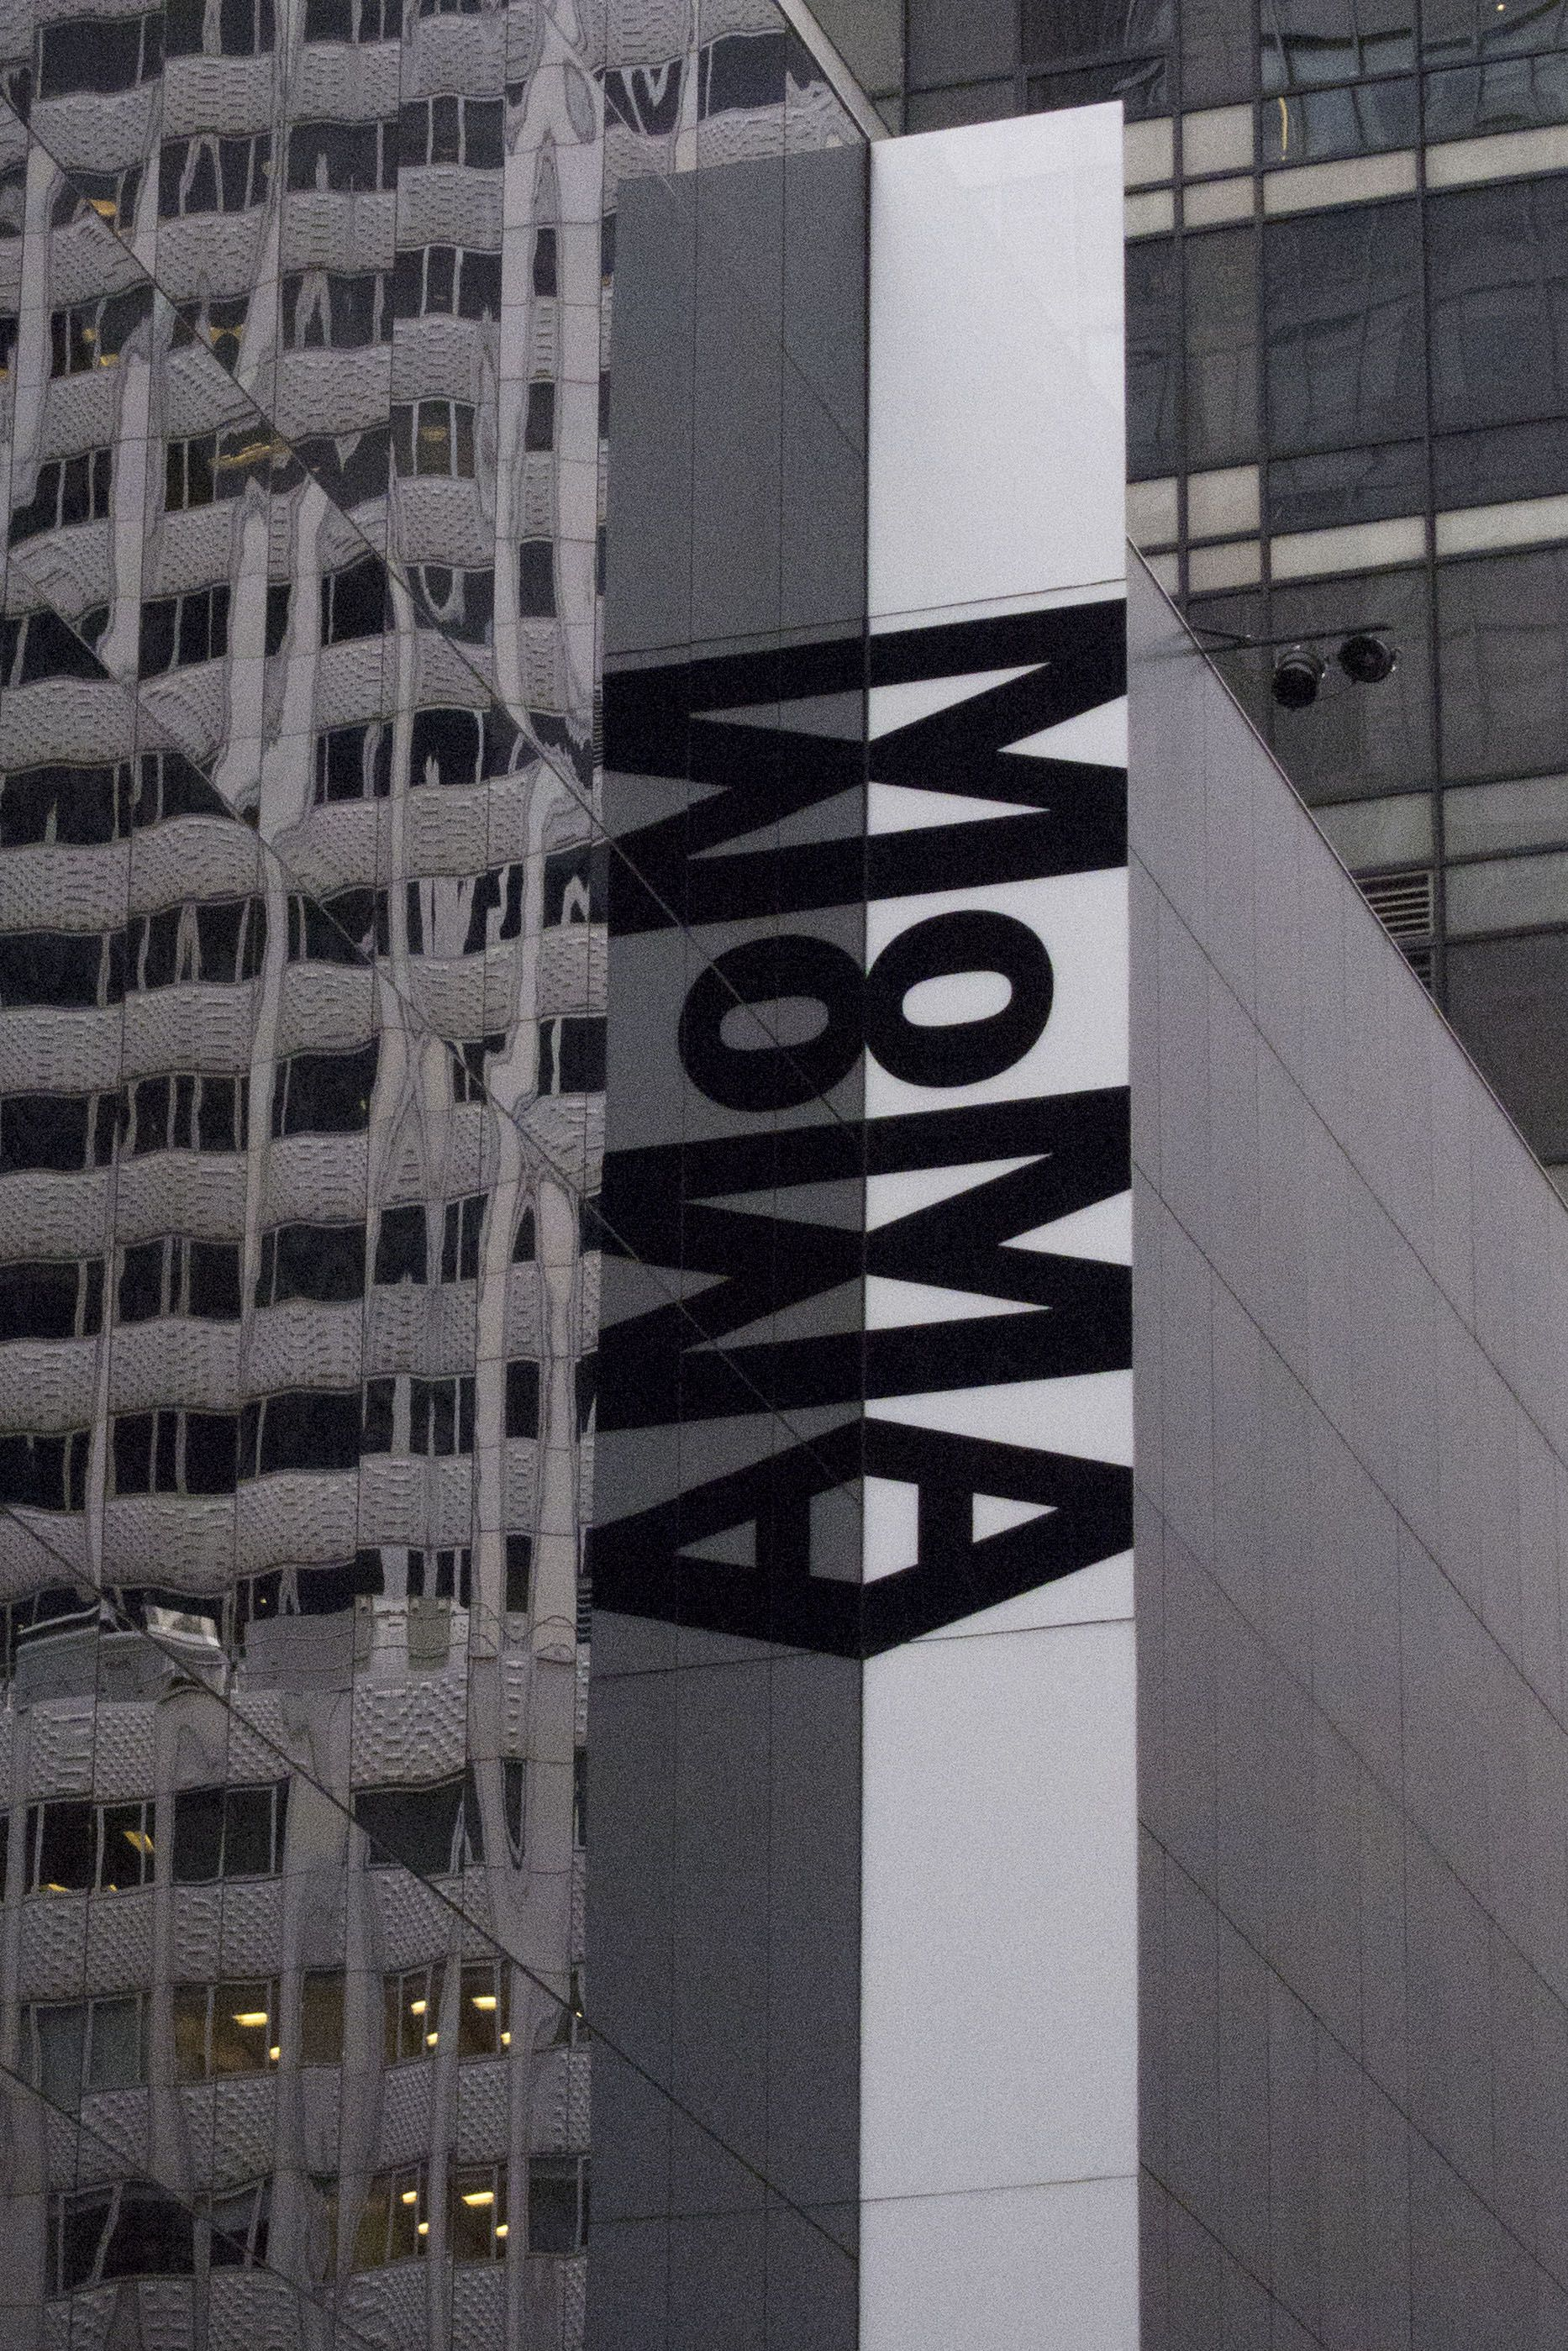 Park Ave Auto >> A Guide to Manhattan's MoMA with MoMA Hours & More Info